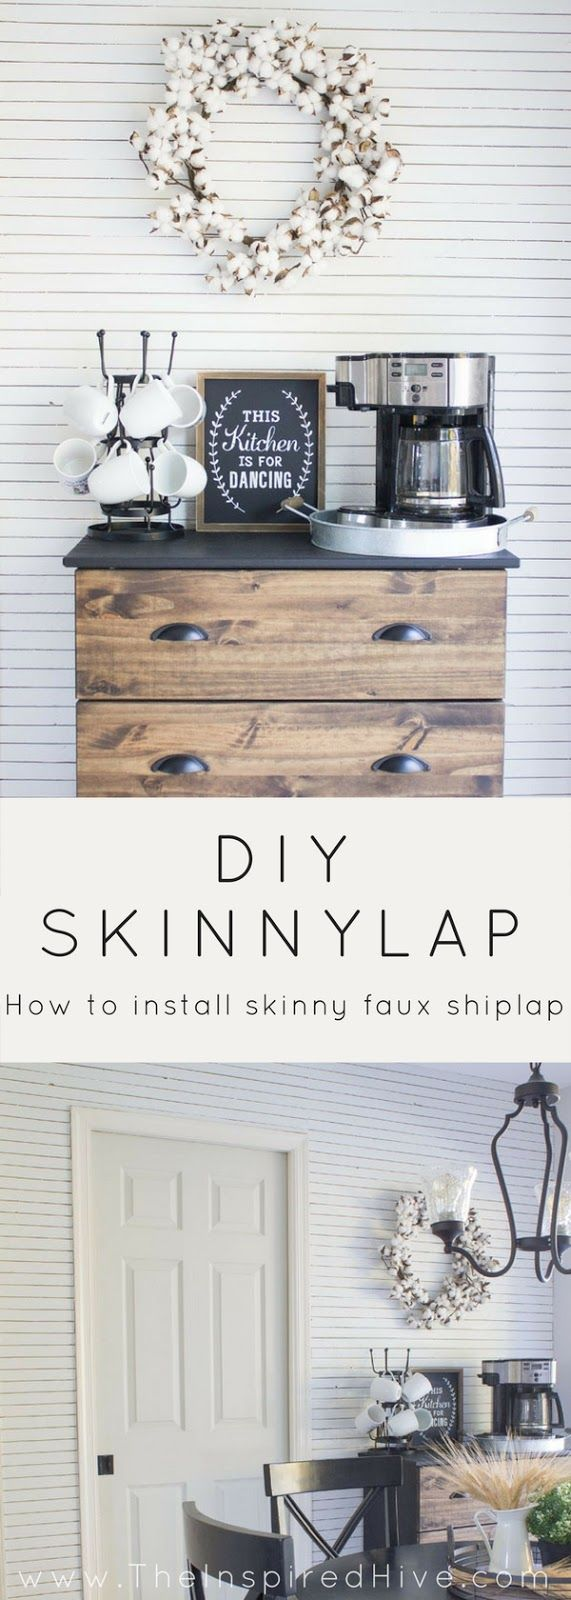 DIY Skinnylap- How to install thin faux shiplap. Get the Fixer Upper modern farmhouse look with a wood lath feature wall.